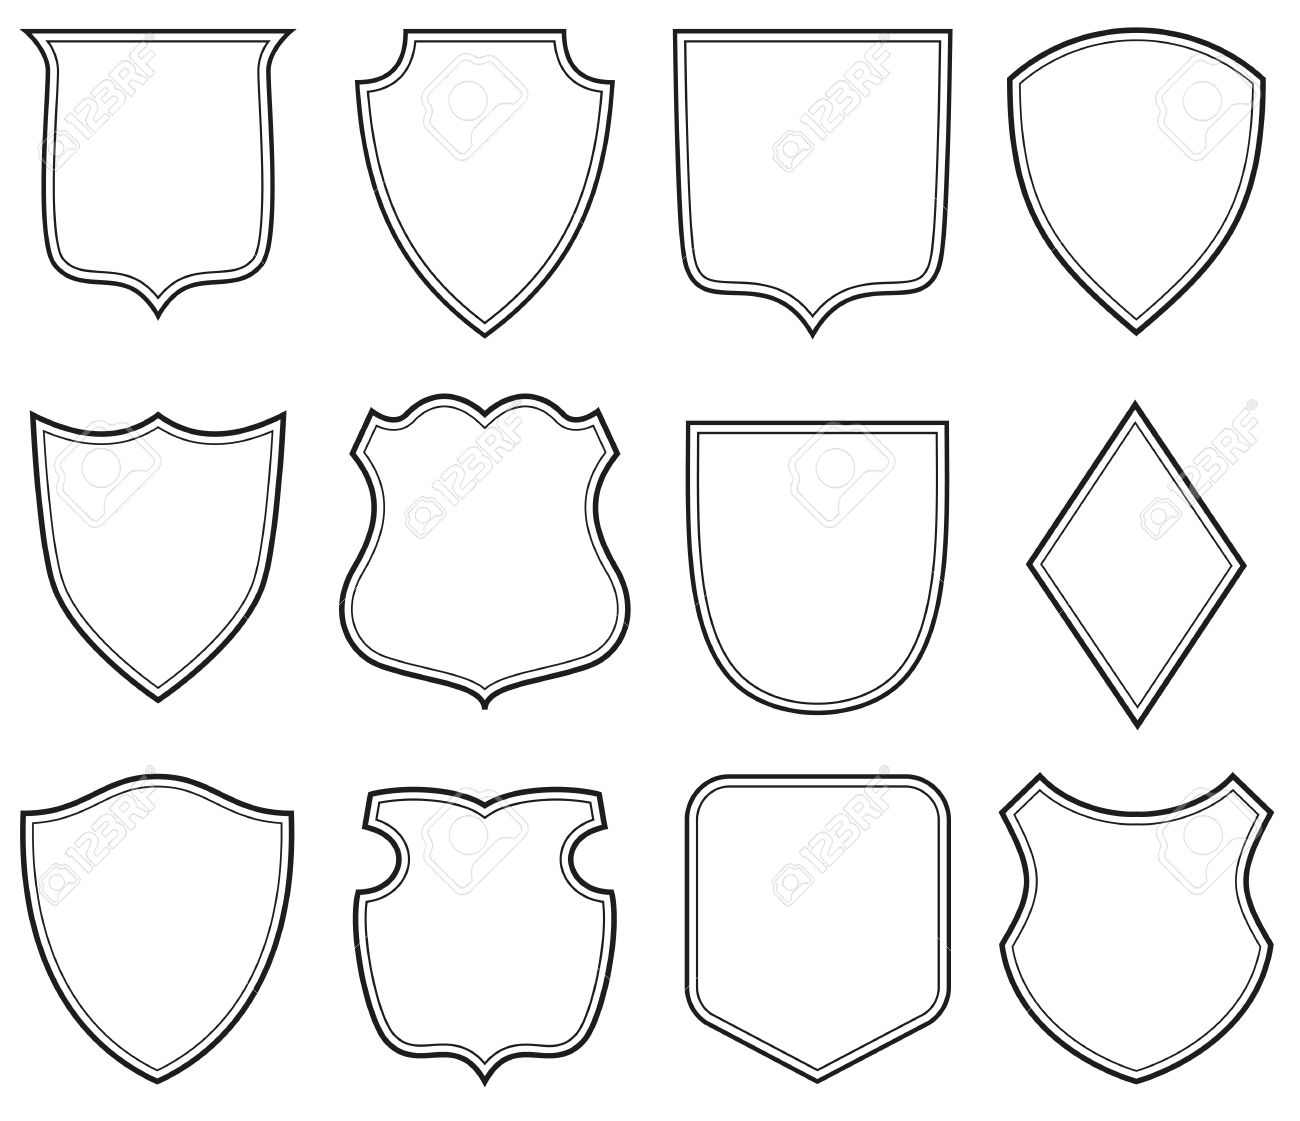 Collection Of Heraldic Shield Shapes Royalty Free Cliparts, Vectors ...